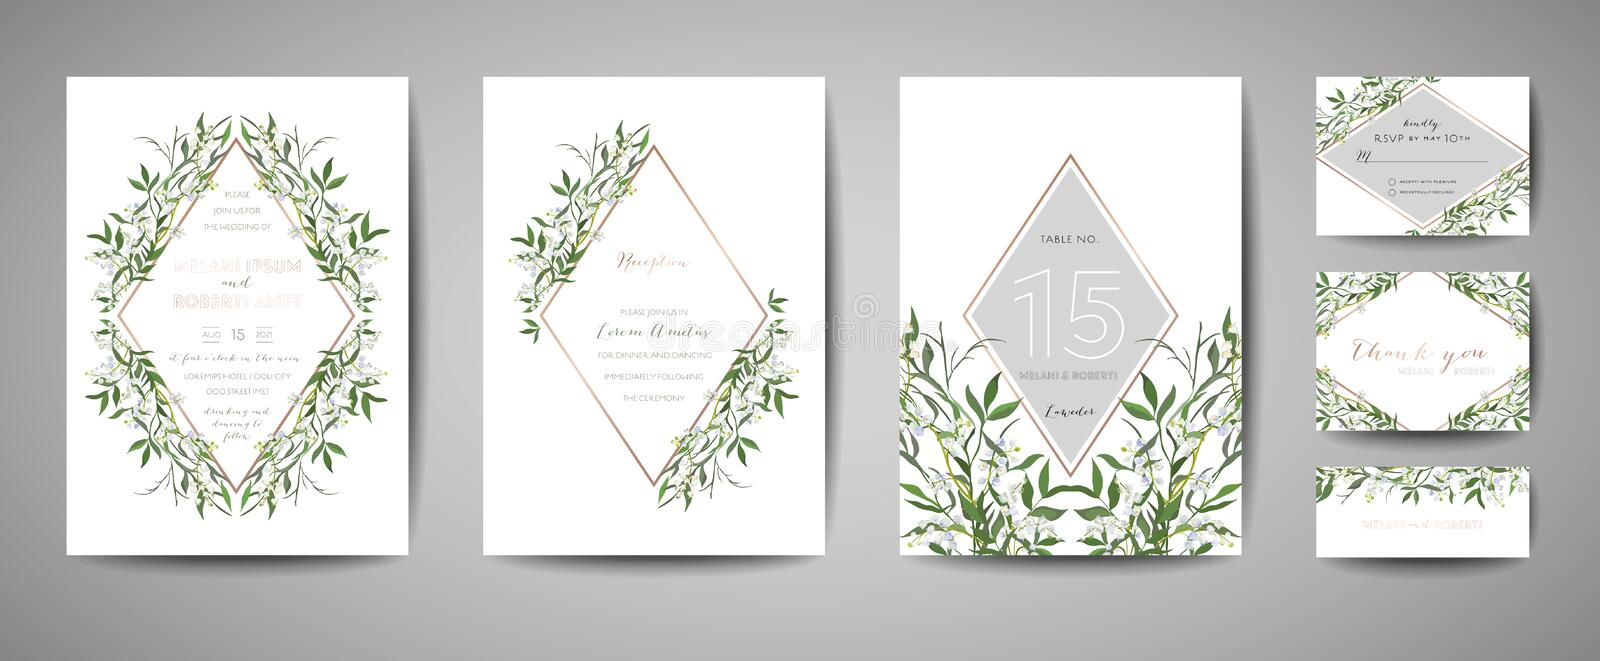 Luxury Flower Vintage Wedding Save the Date, Invitation Floral Cards Collection with Gold Foil Frame. Vector trendy cover, graphic vector illustration